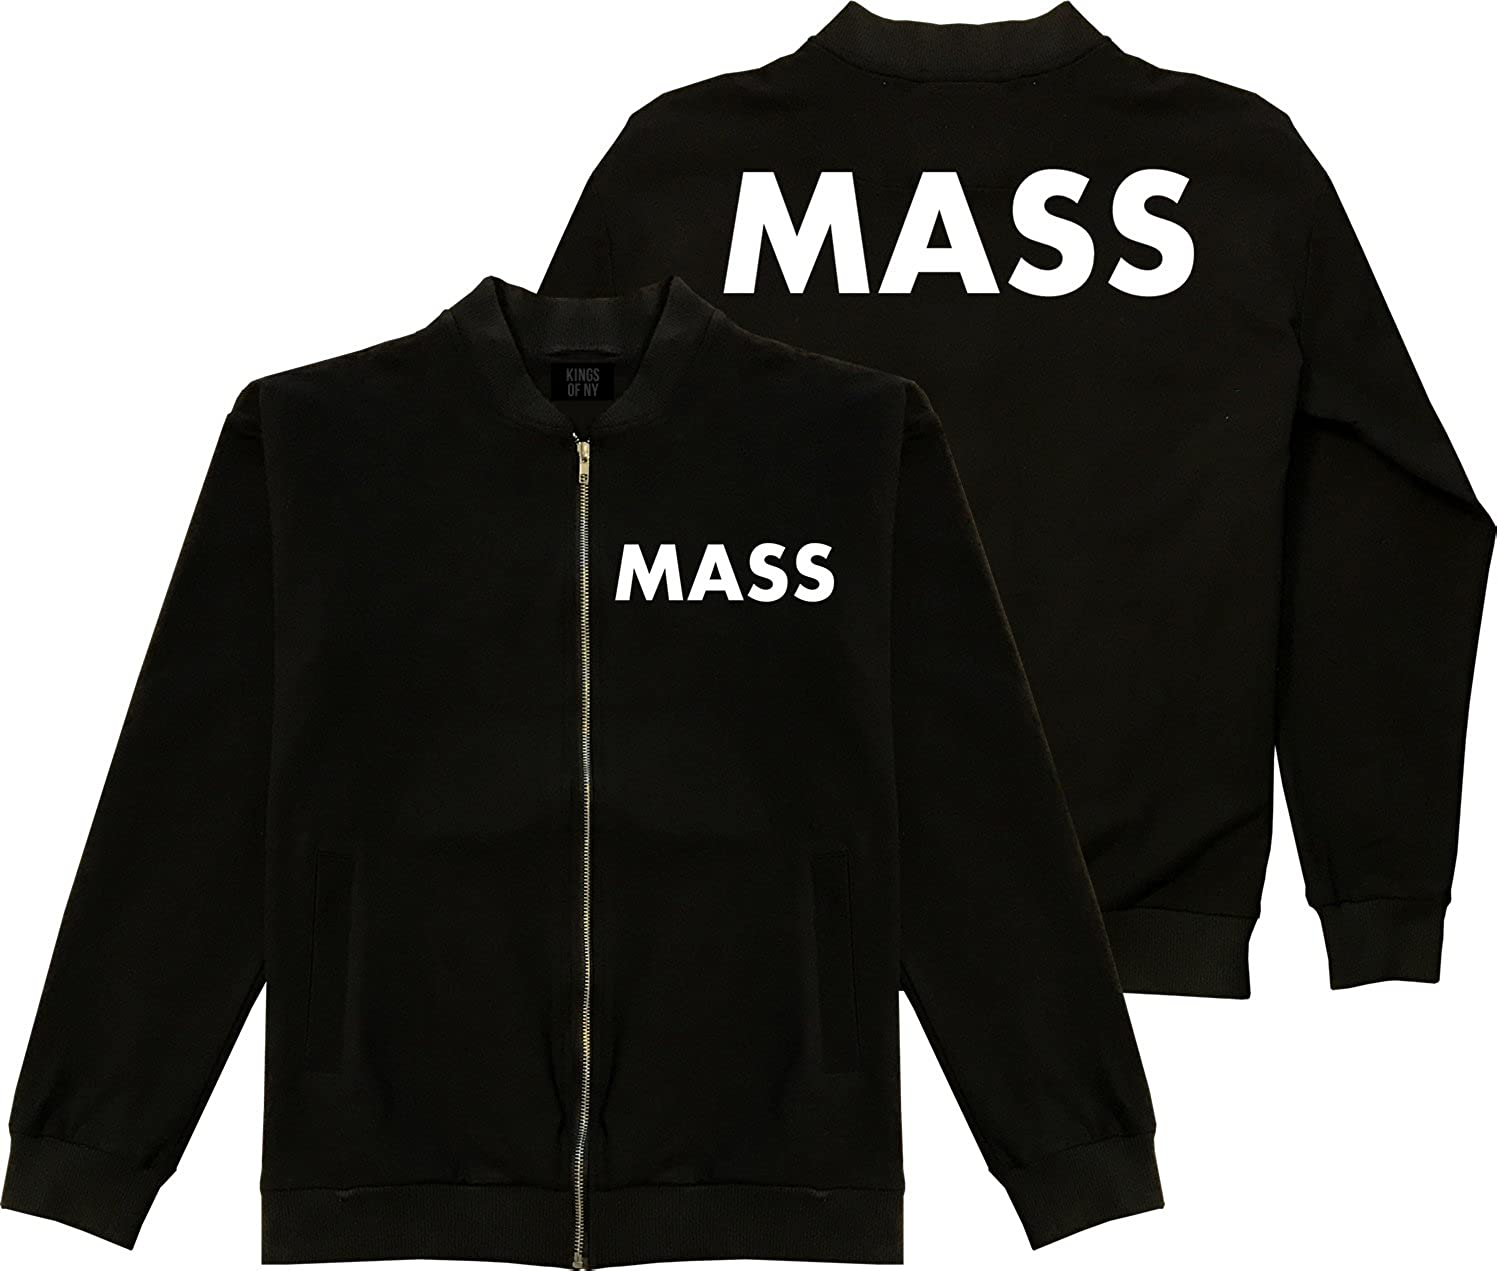 Kings Of NY Massachusetts State 2 Shipping Max 67% OFF included Bomber Sided Black Cotton Jack